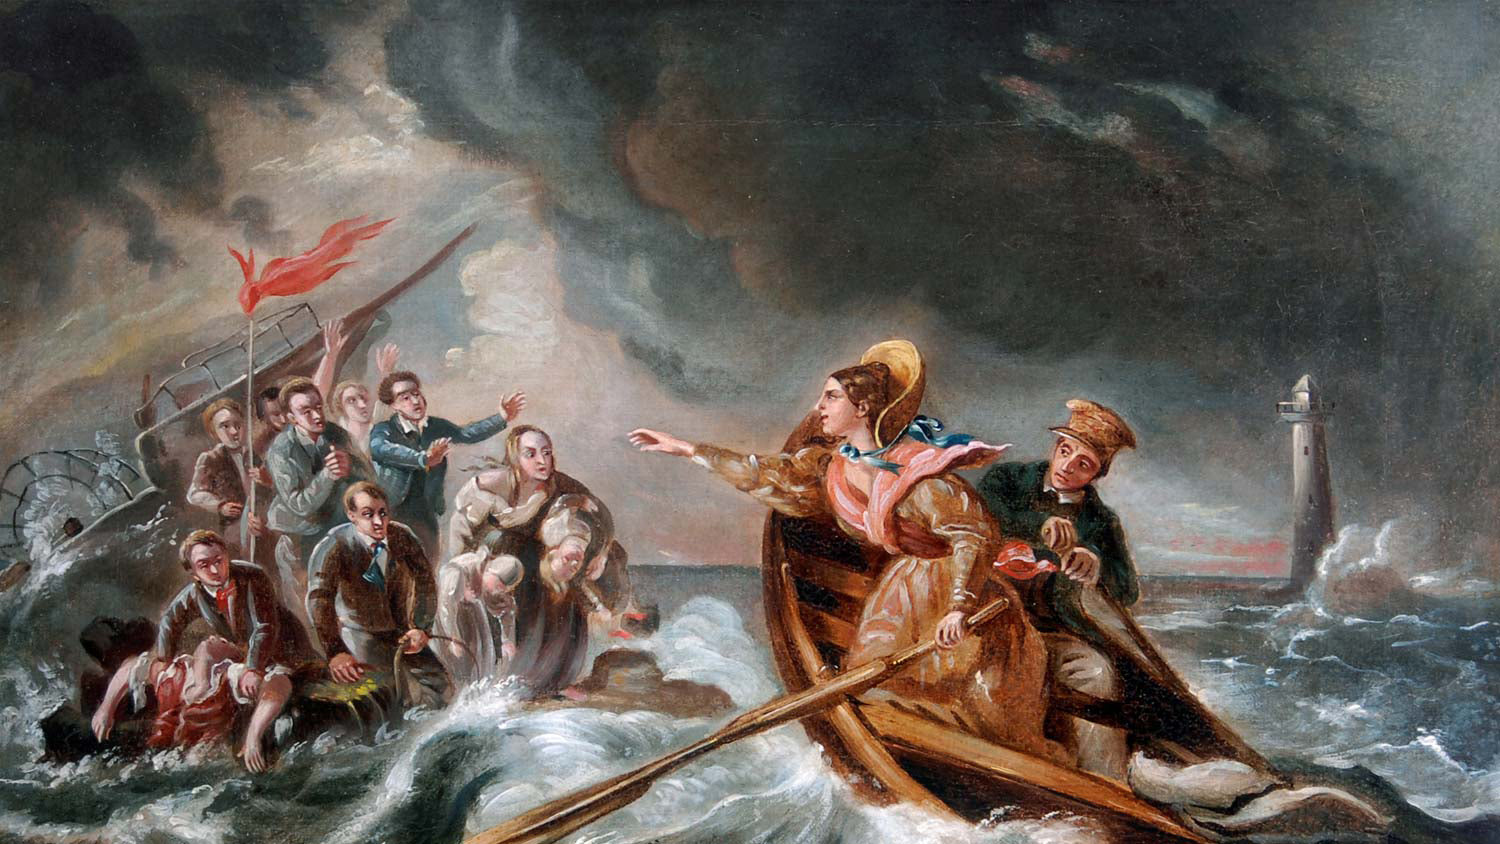 A-painting-of-Grace-darlings-heroic-rescue-Image-Credit-Charles-Achille-DHardvillier-Grace-Darling-Museum